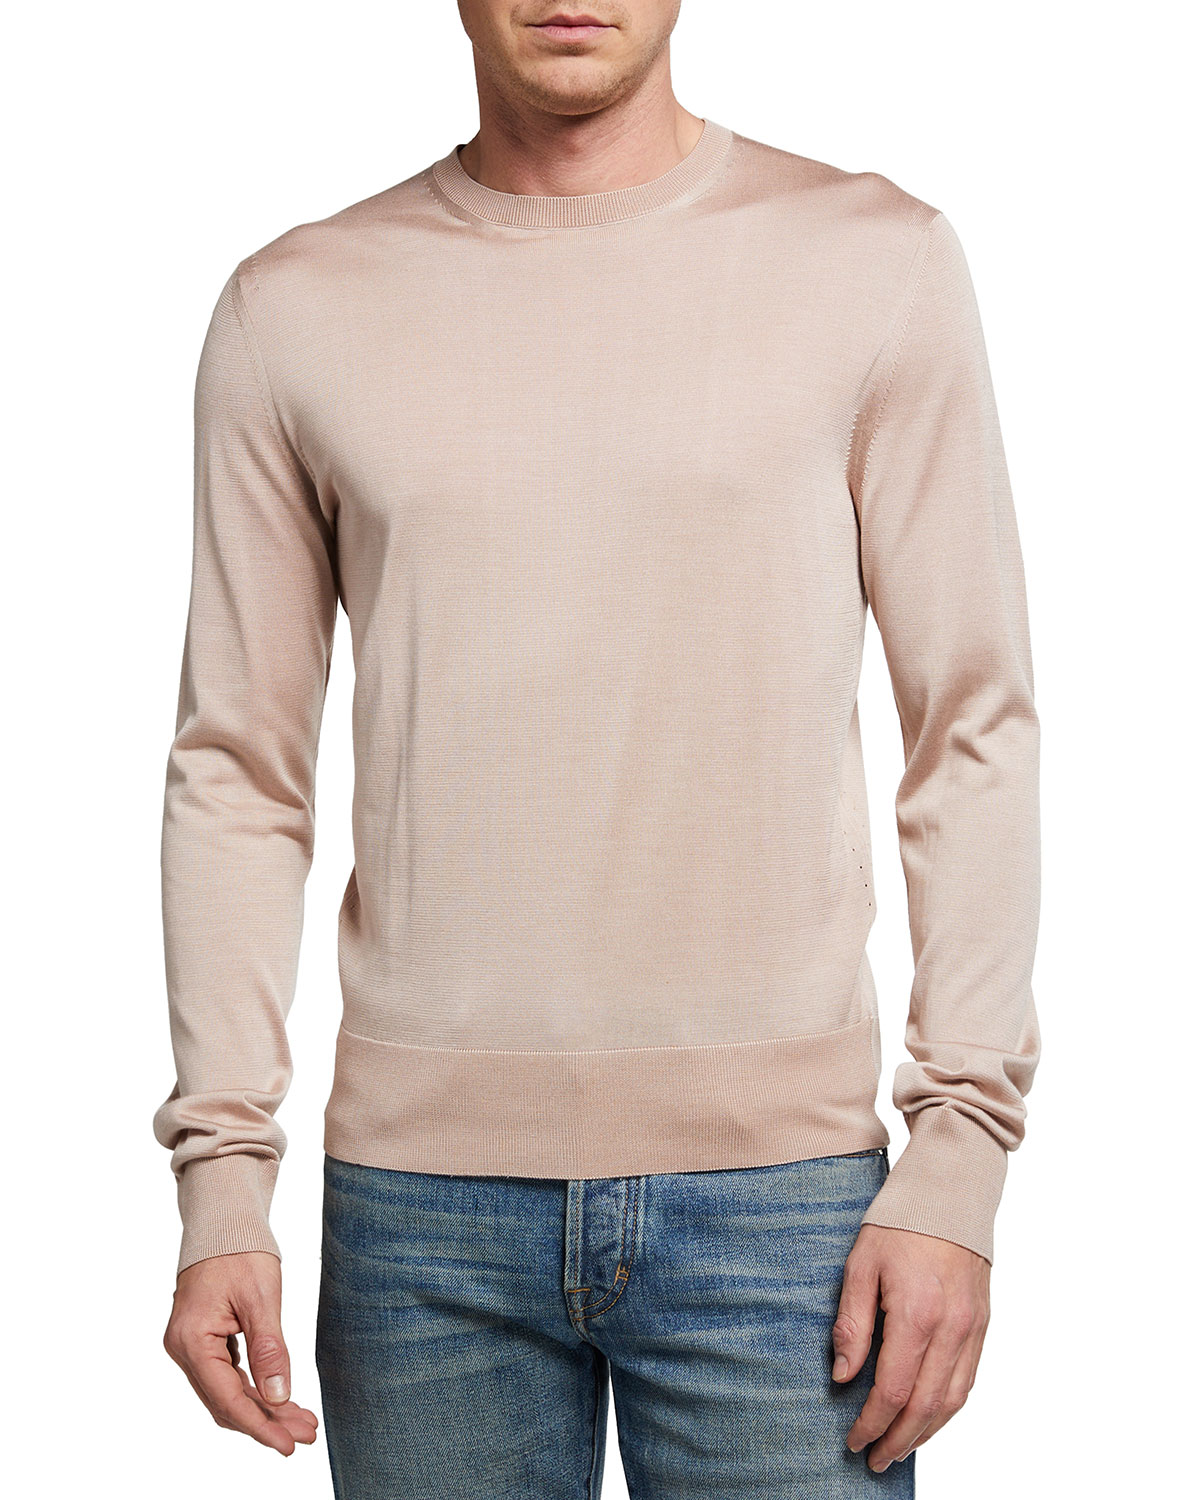 Tom Ford MEN'S PLATED SILK CREWNECK SWEATER